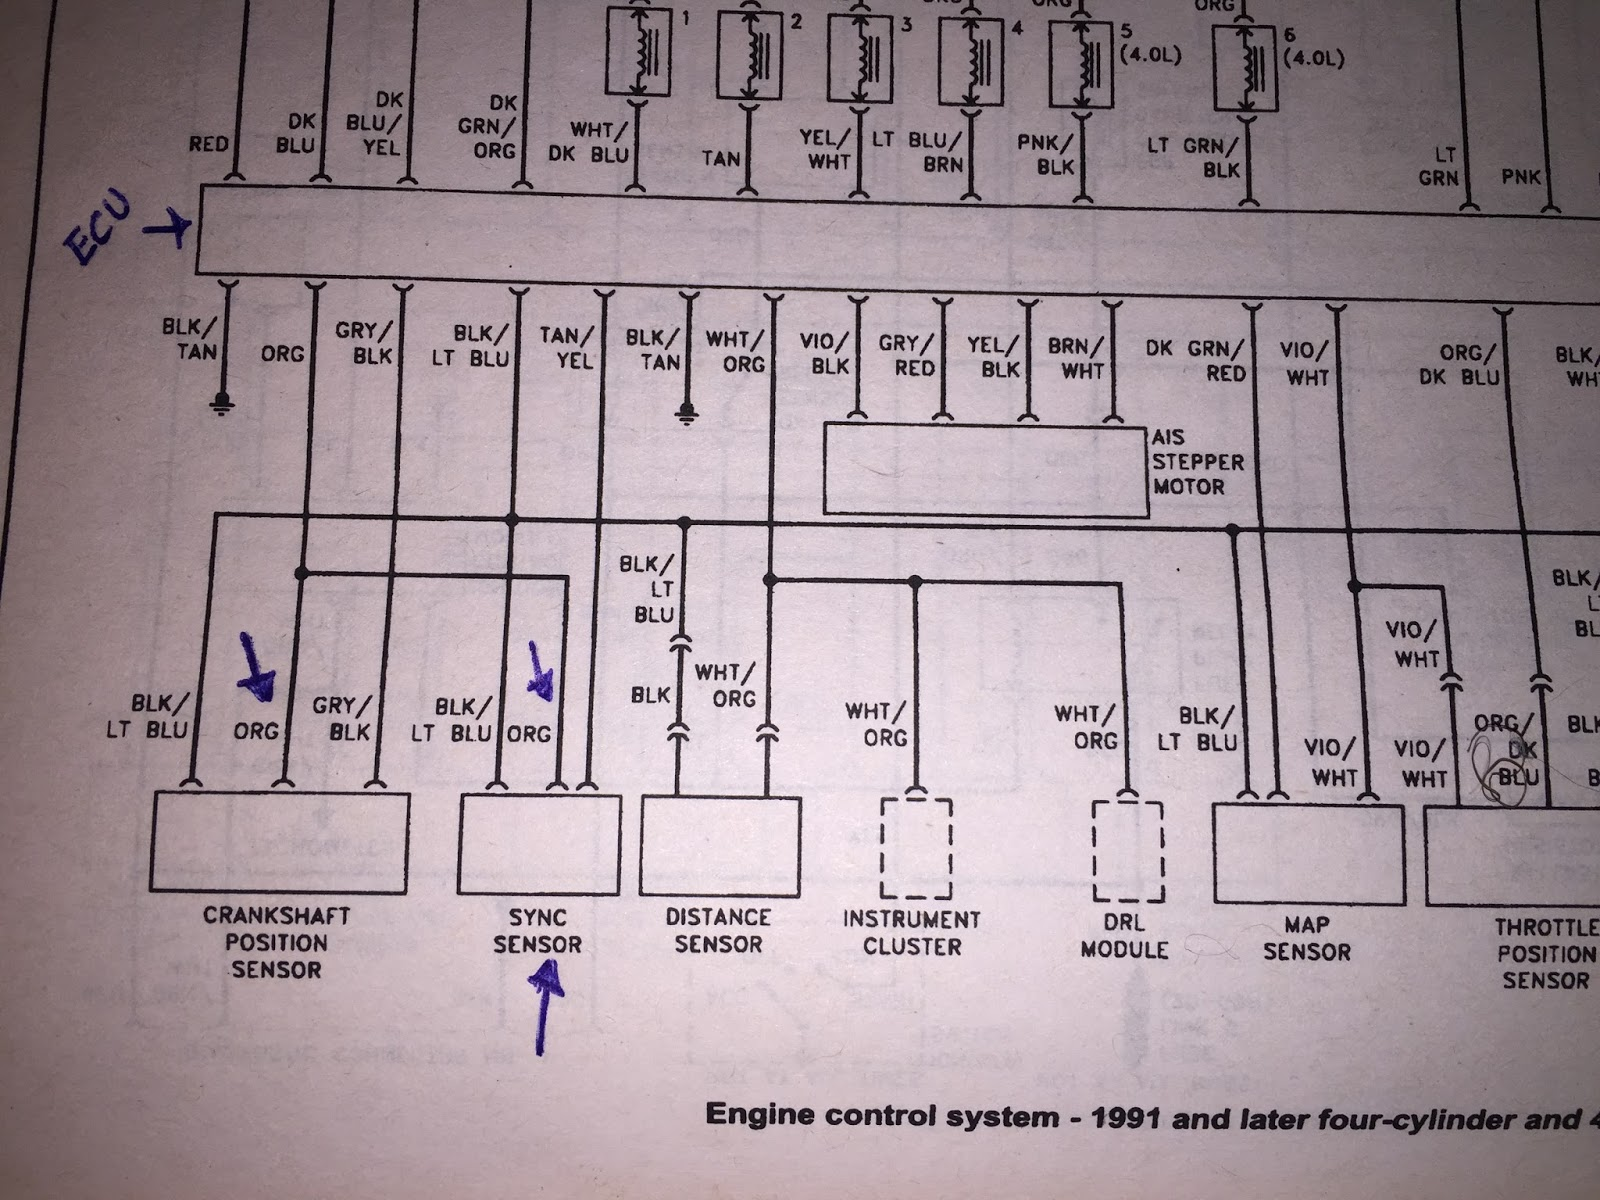 medium resolution of 1991 xj crank no start cps wiring bad ground jeepforum comhere is a copy